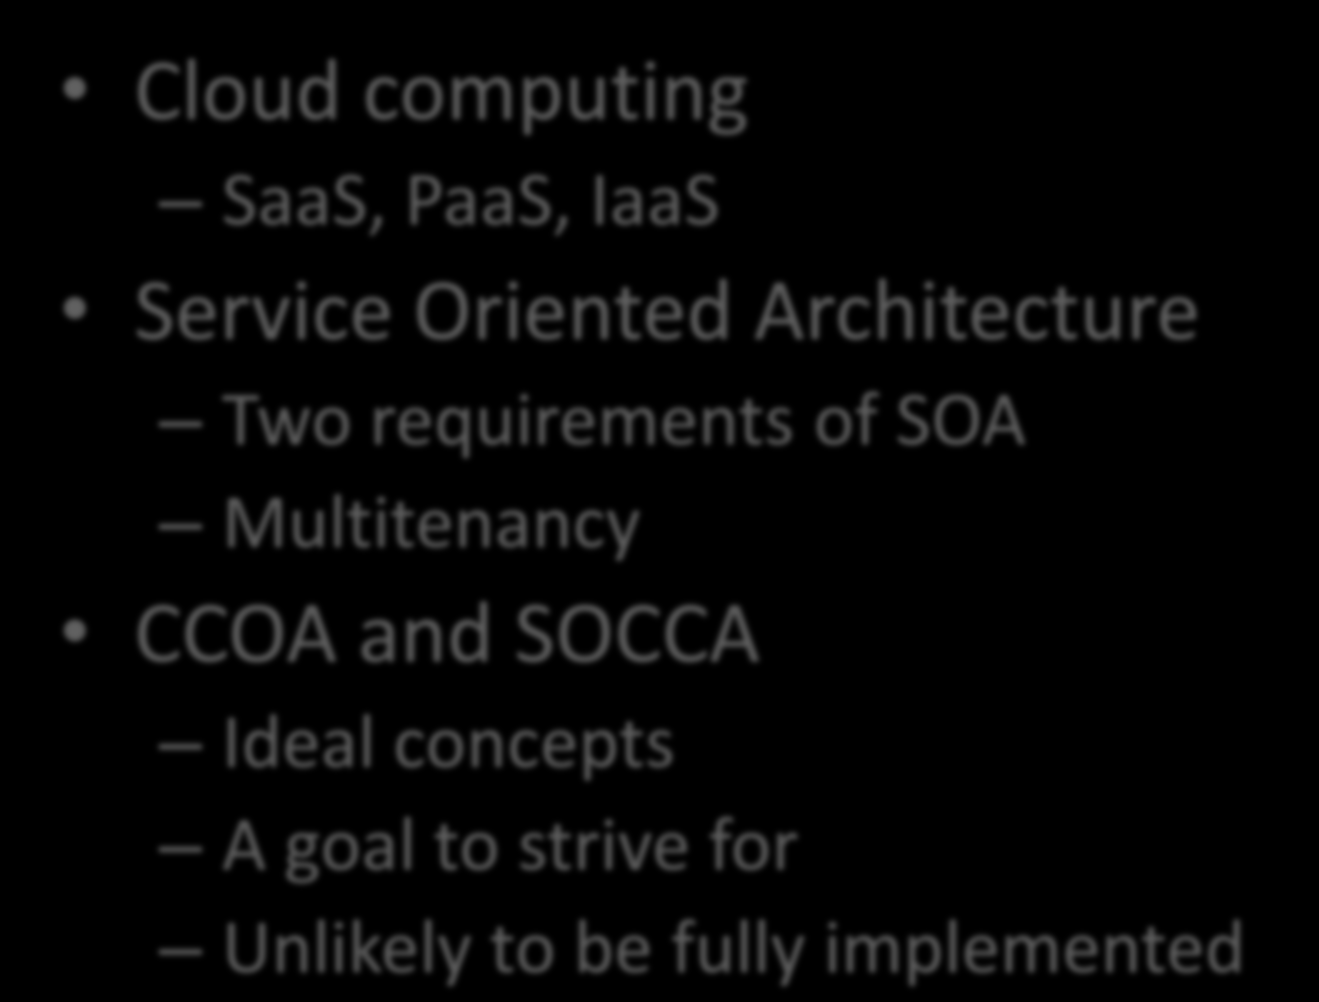 Conclusion Cloud computing SaaS, PaaS, IaaS Service Oriented Architecture Two requirements of